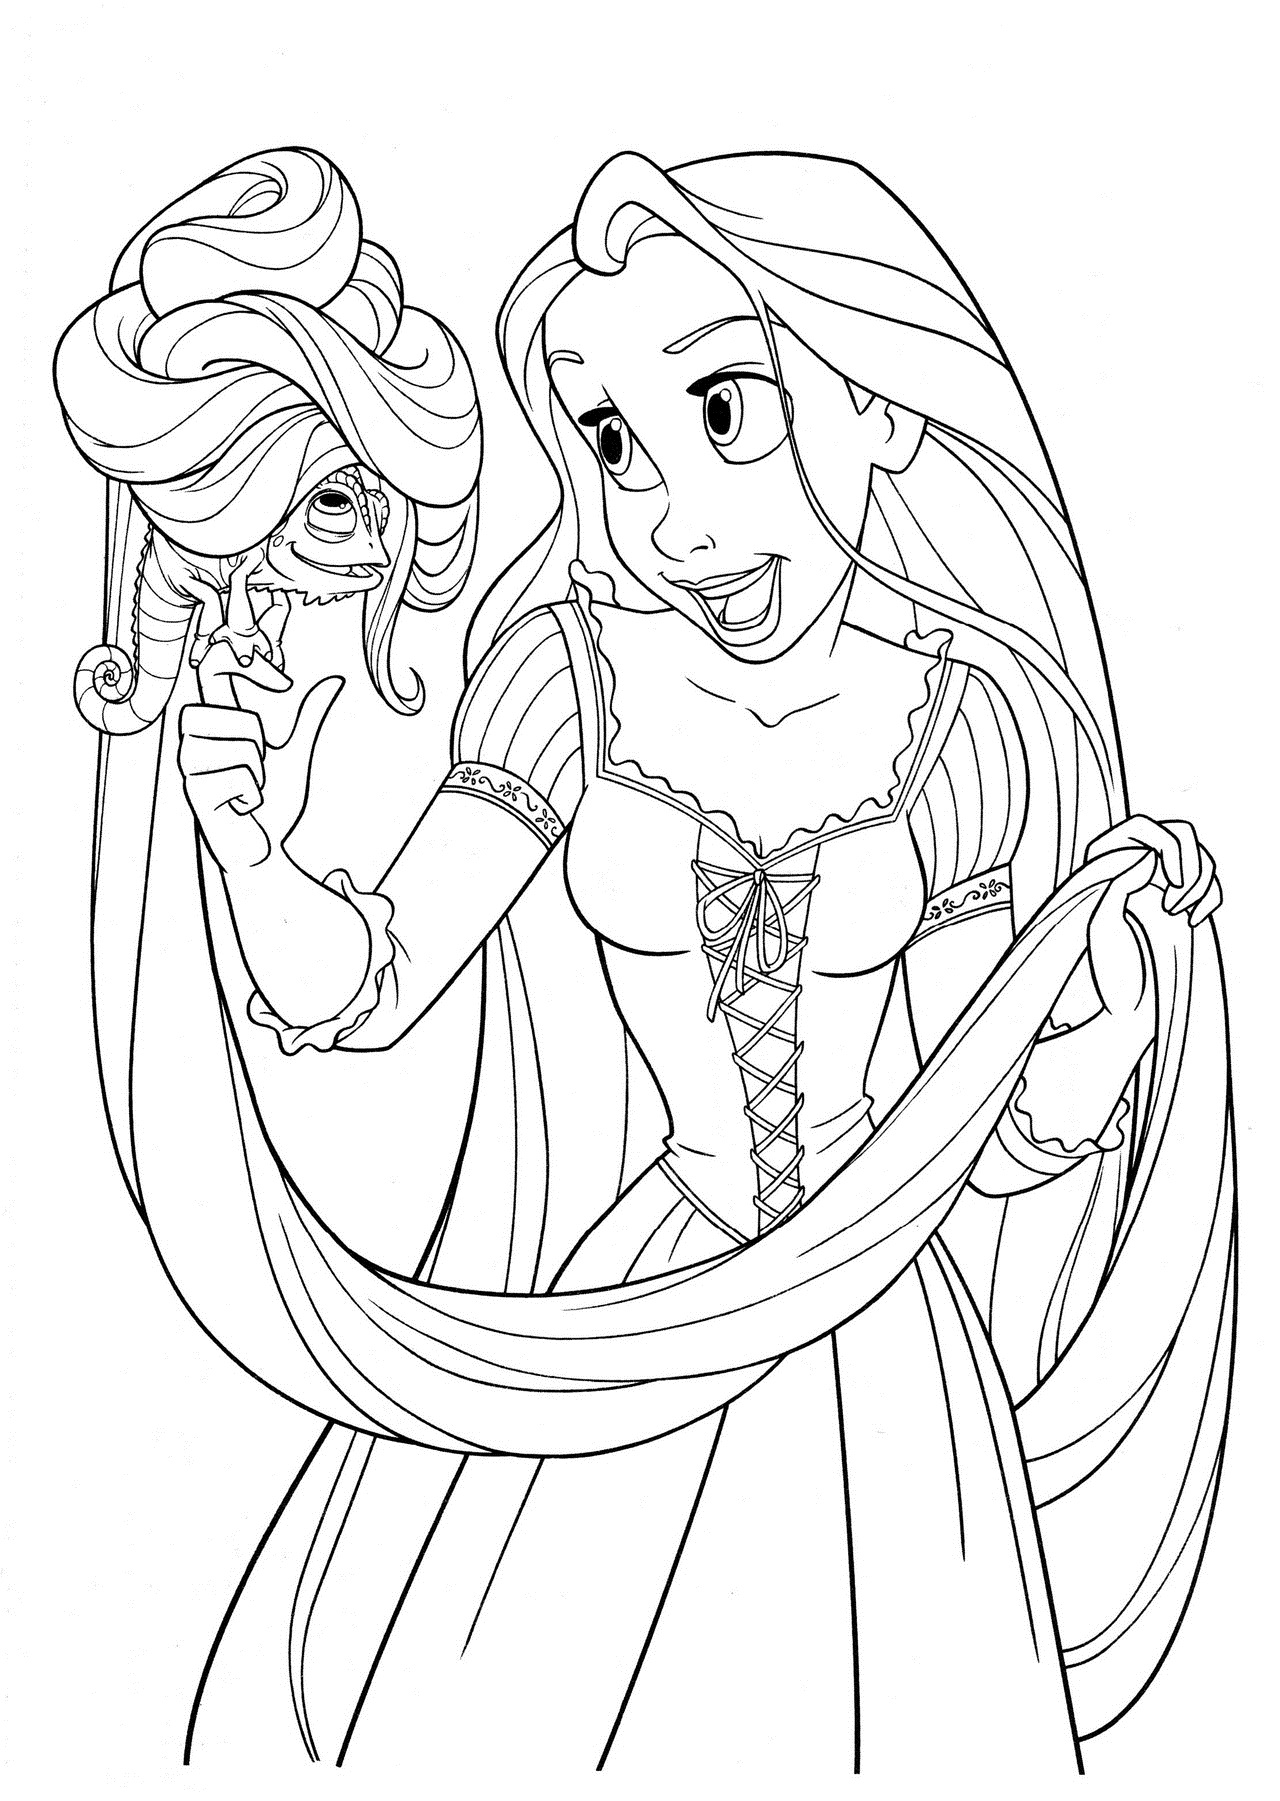 childrens disney coloring pages - photo#29